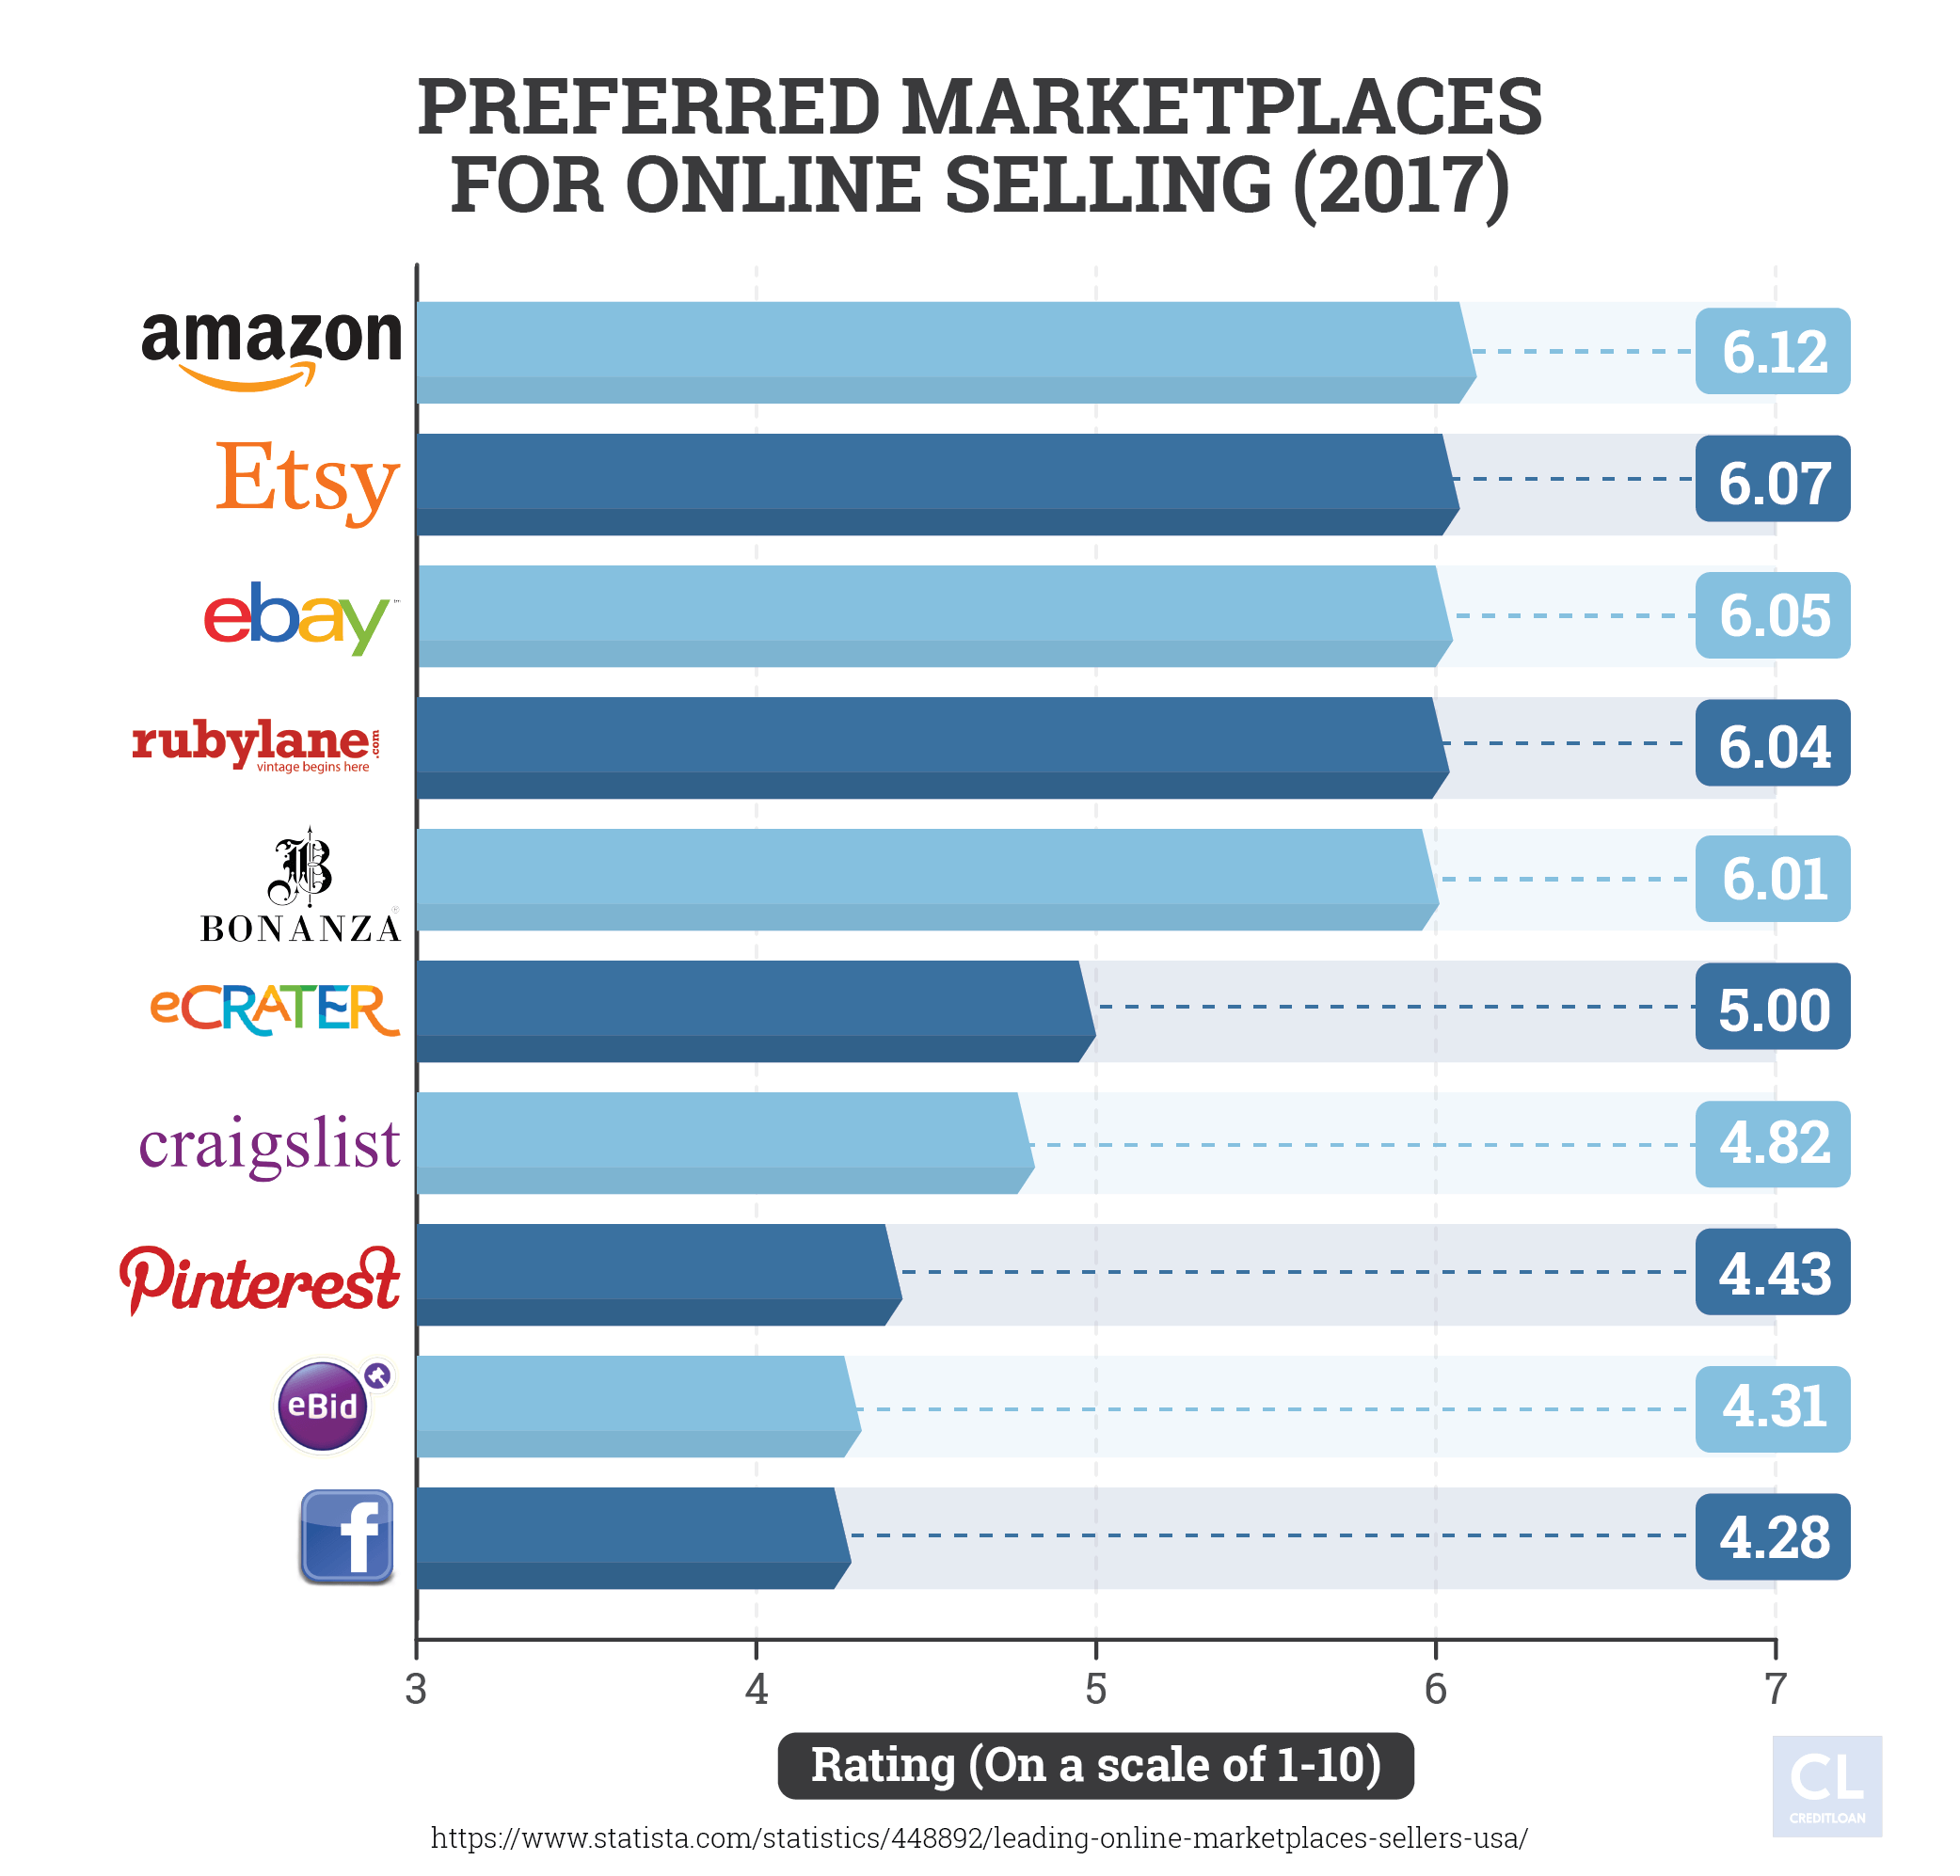 Best Markets for Online Selling 2017